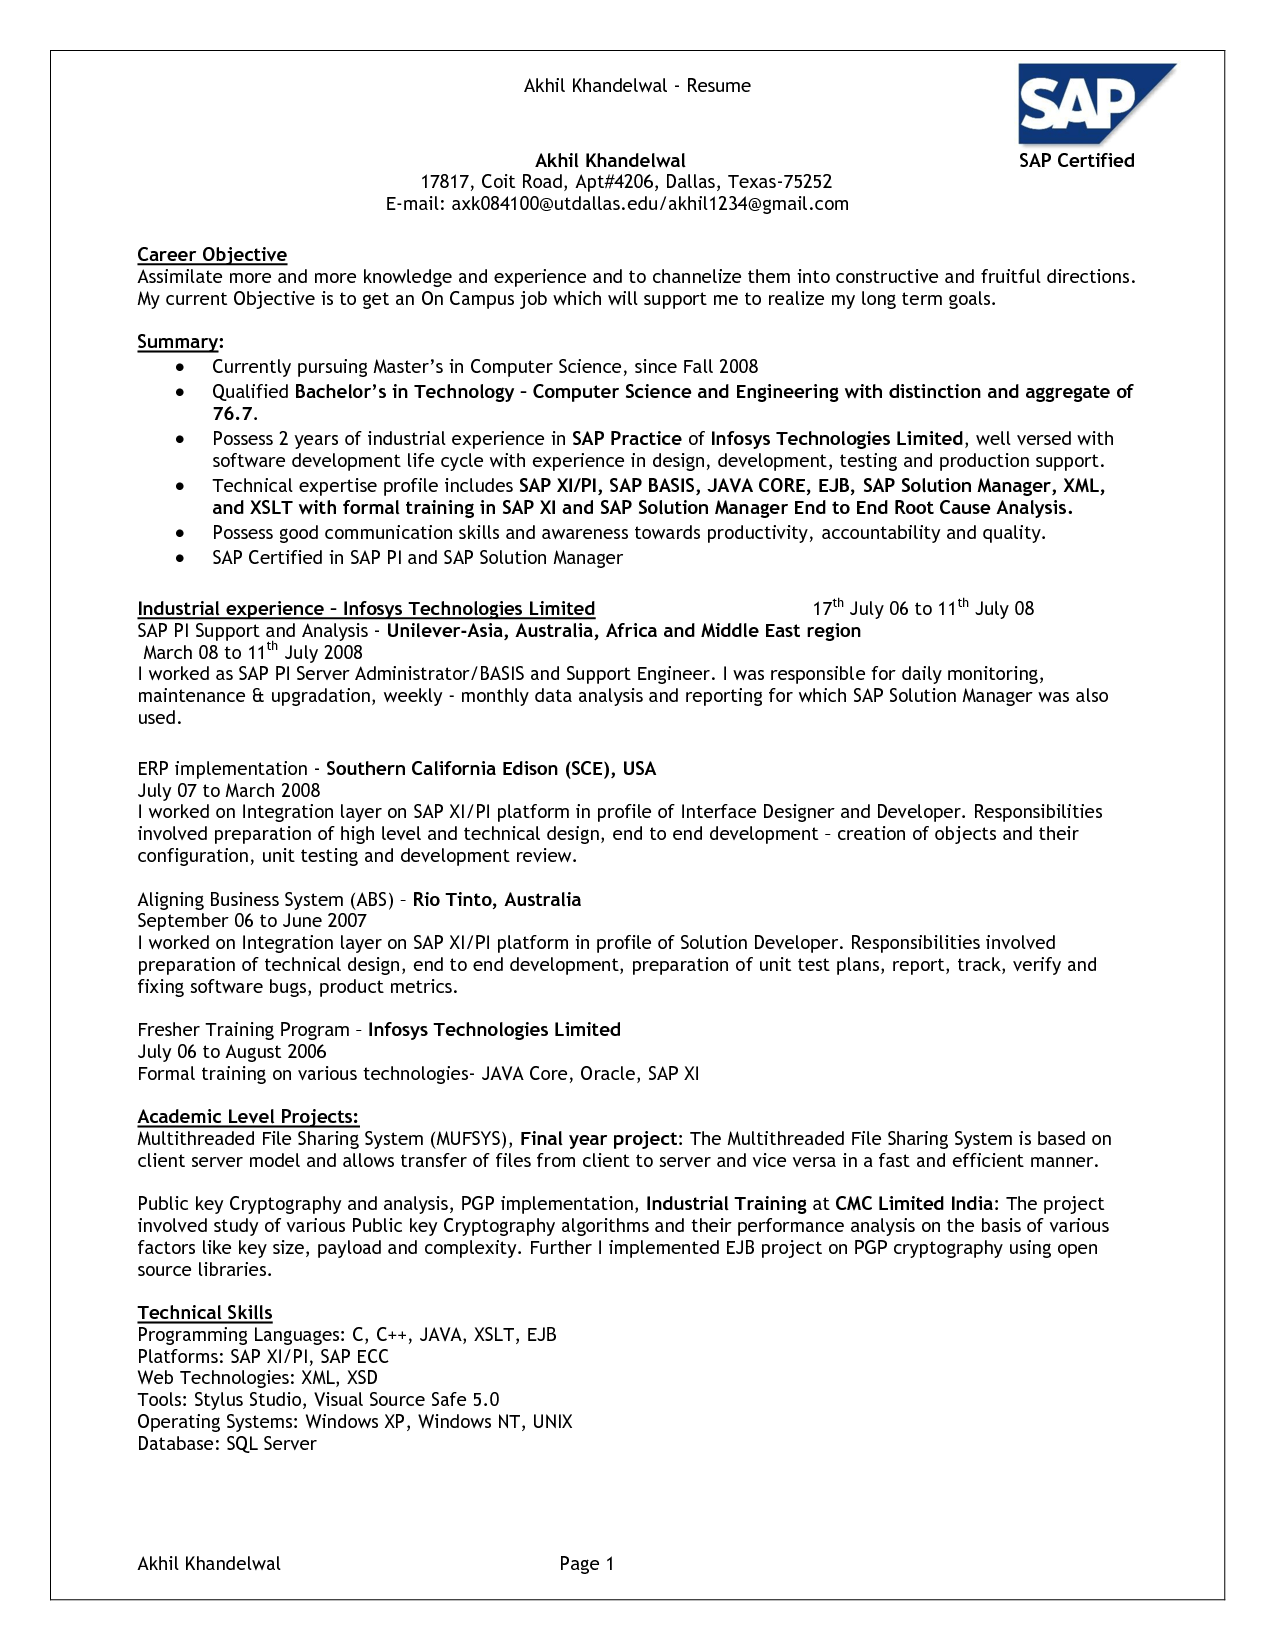 Resume Of Sap Mm Interview - The best estimate connoisseur | Games ...